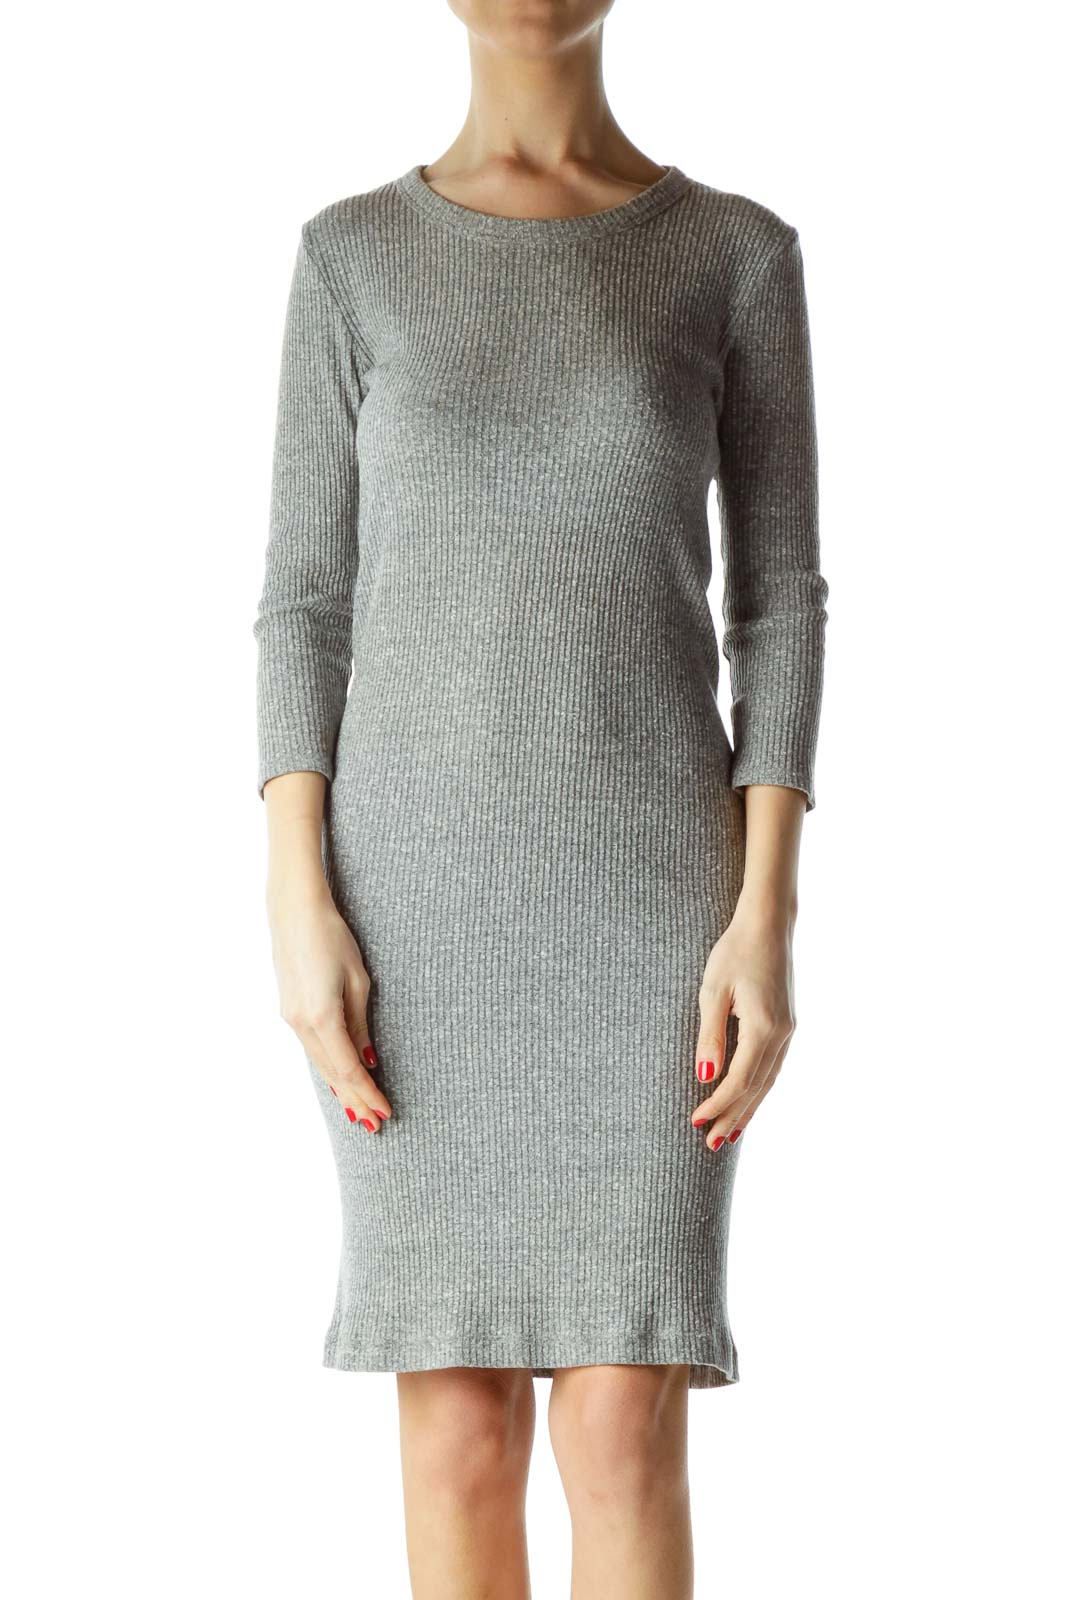 Gray 3/4 Sleeve Knit Dress